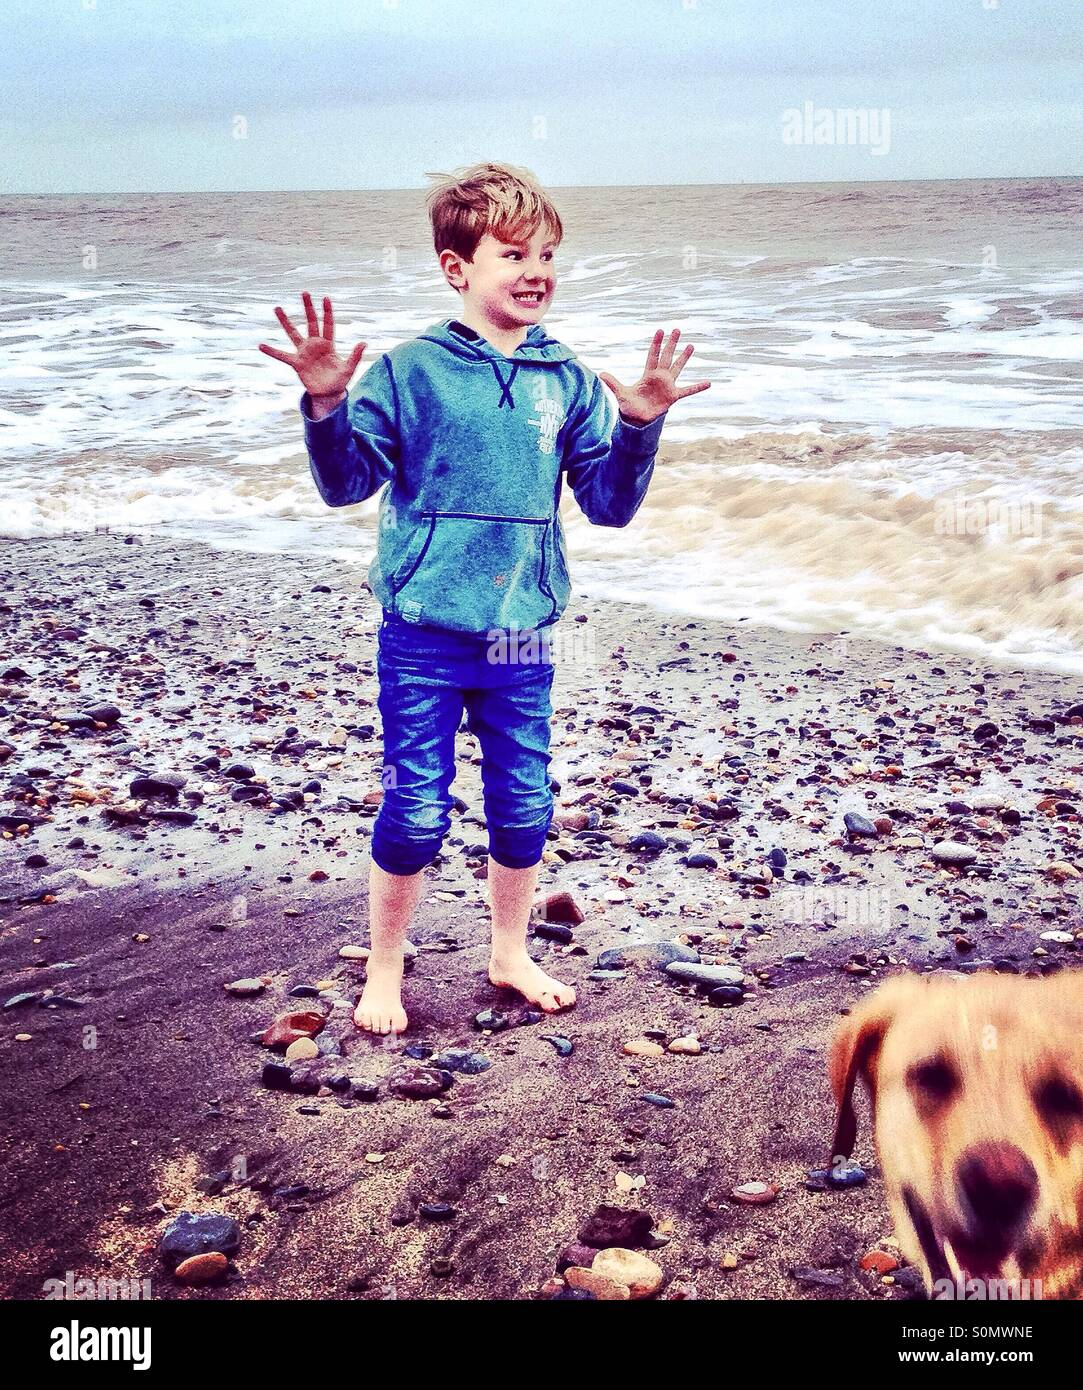 Boy on a beach being photobombed by dog. - Stock Image